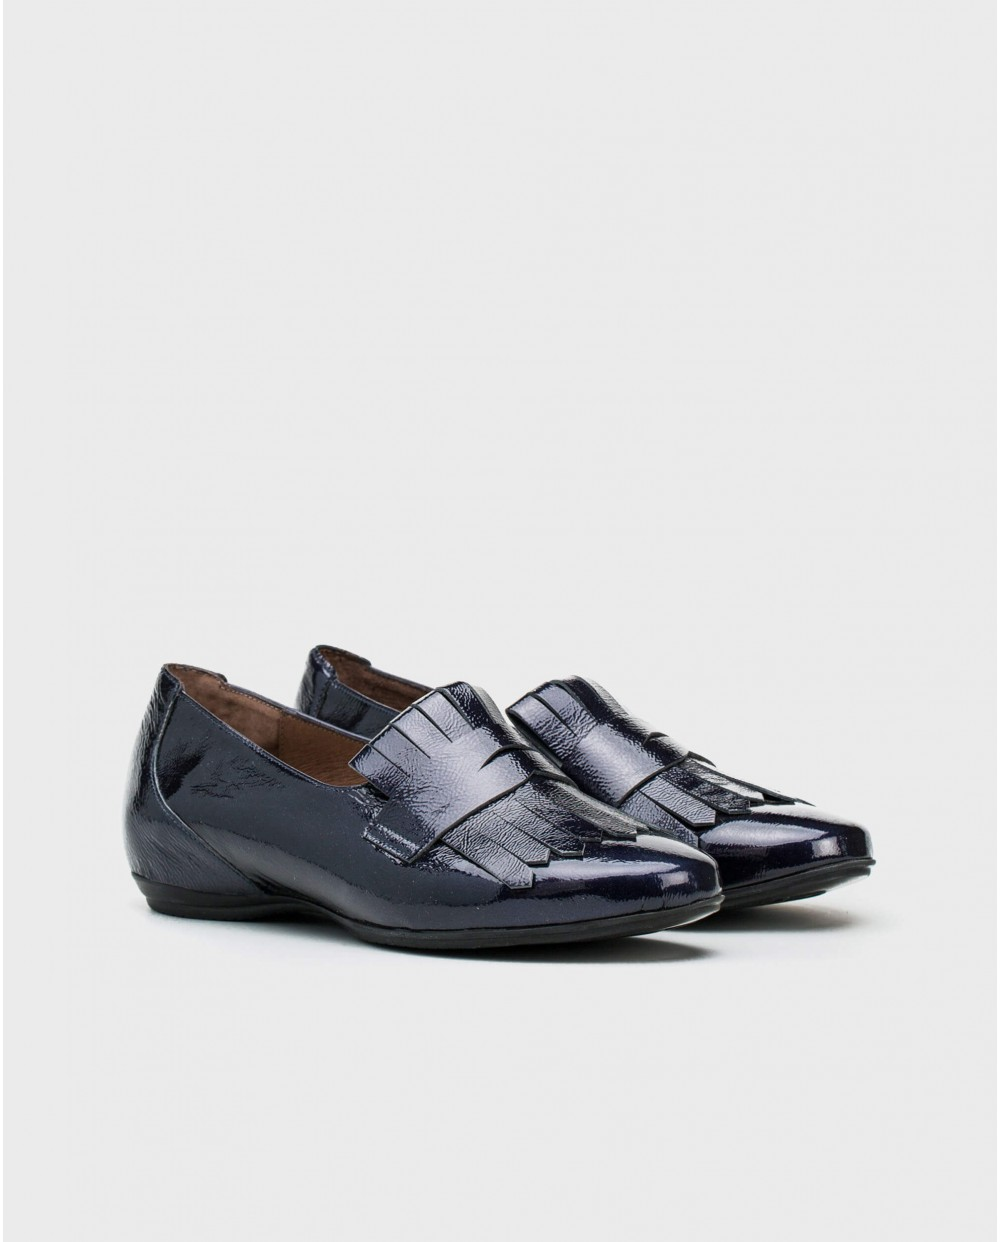 Wonders-Flat Shoes-Patent leather loafer with fringe